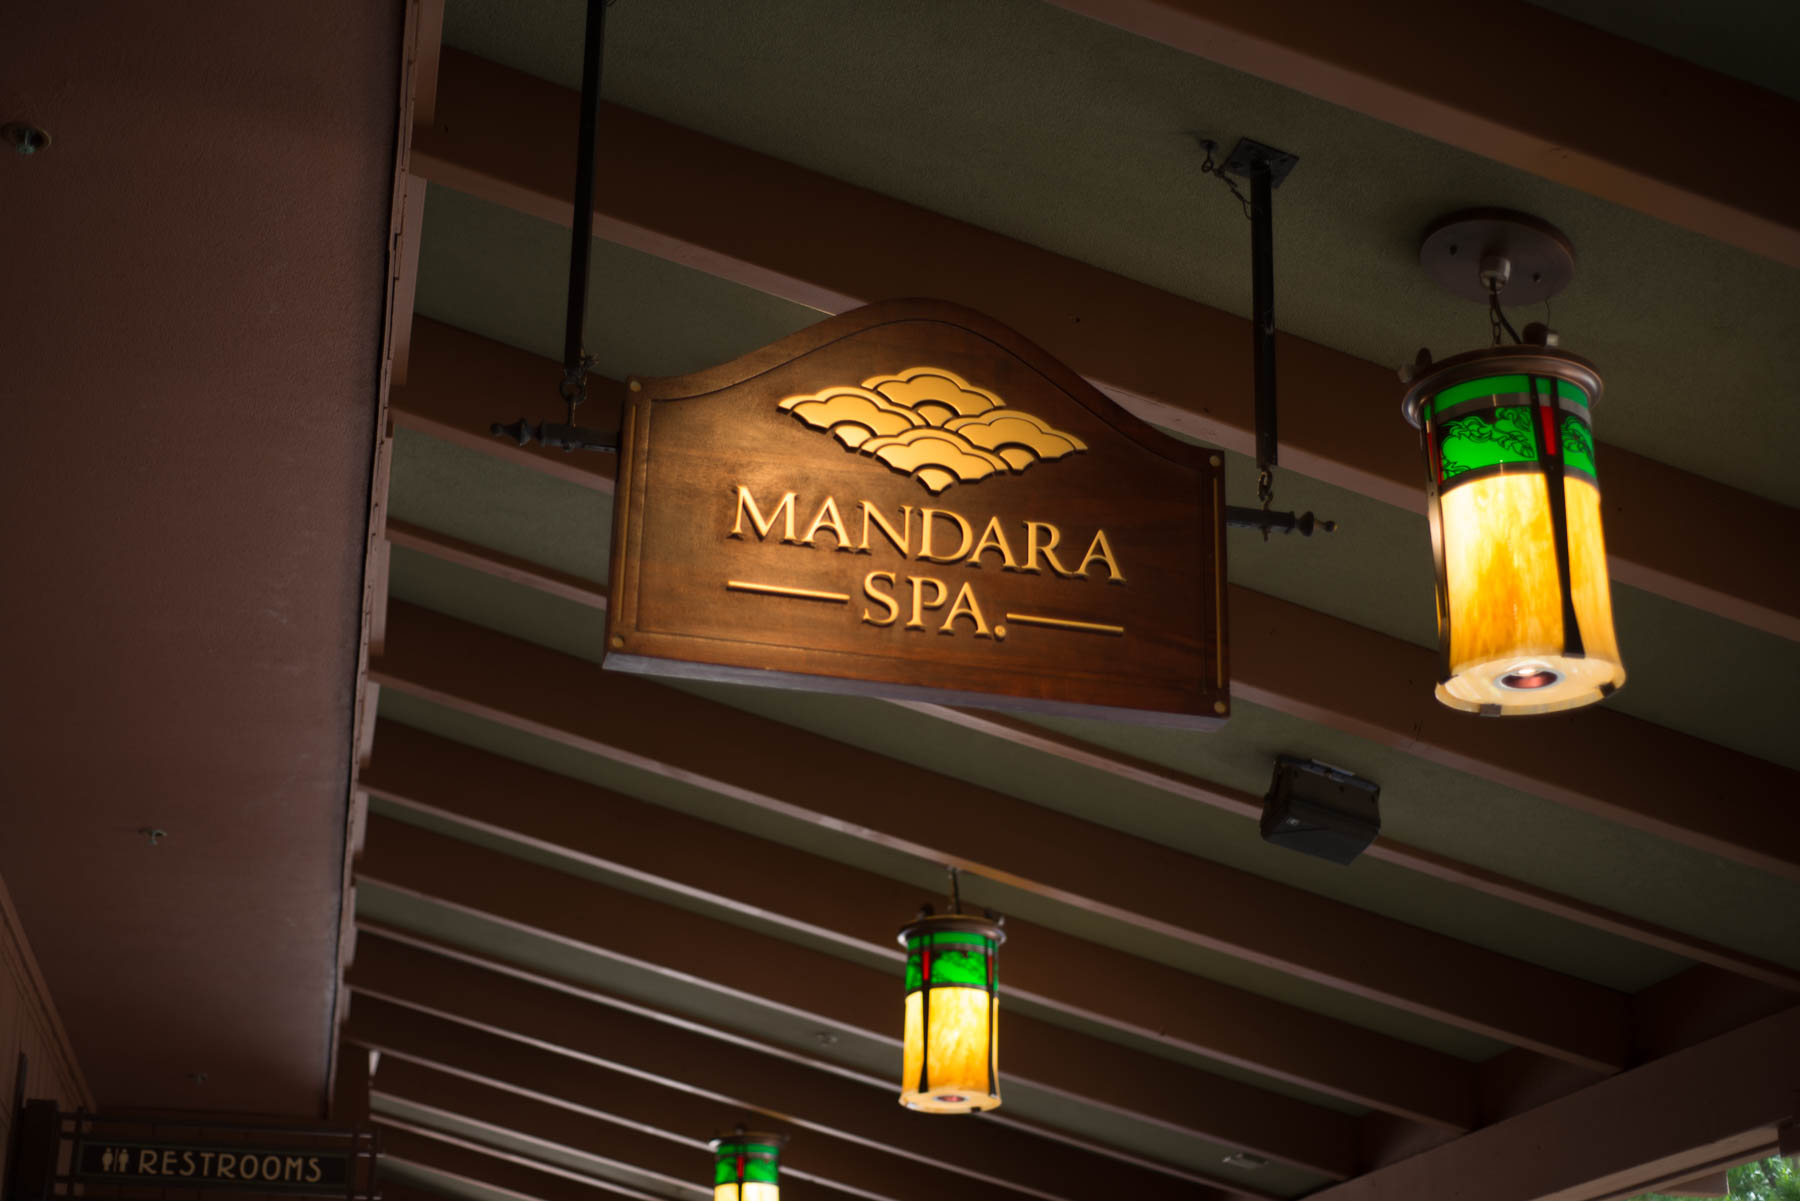 Mandara Spa Sign at the Grand Californian Hotel -Disneyland Hotel Activities for Adults